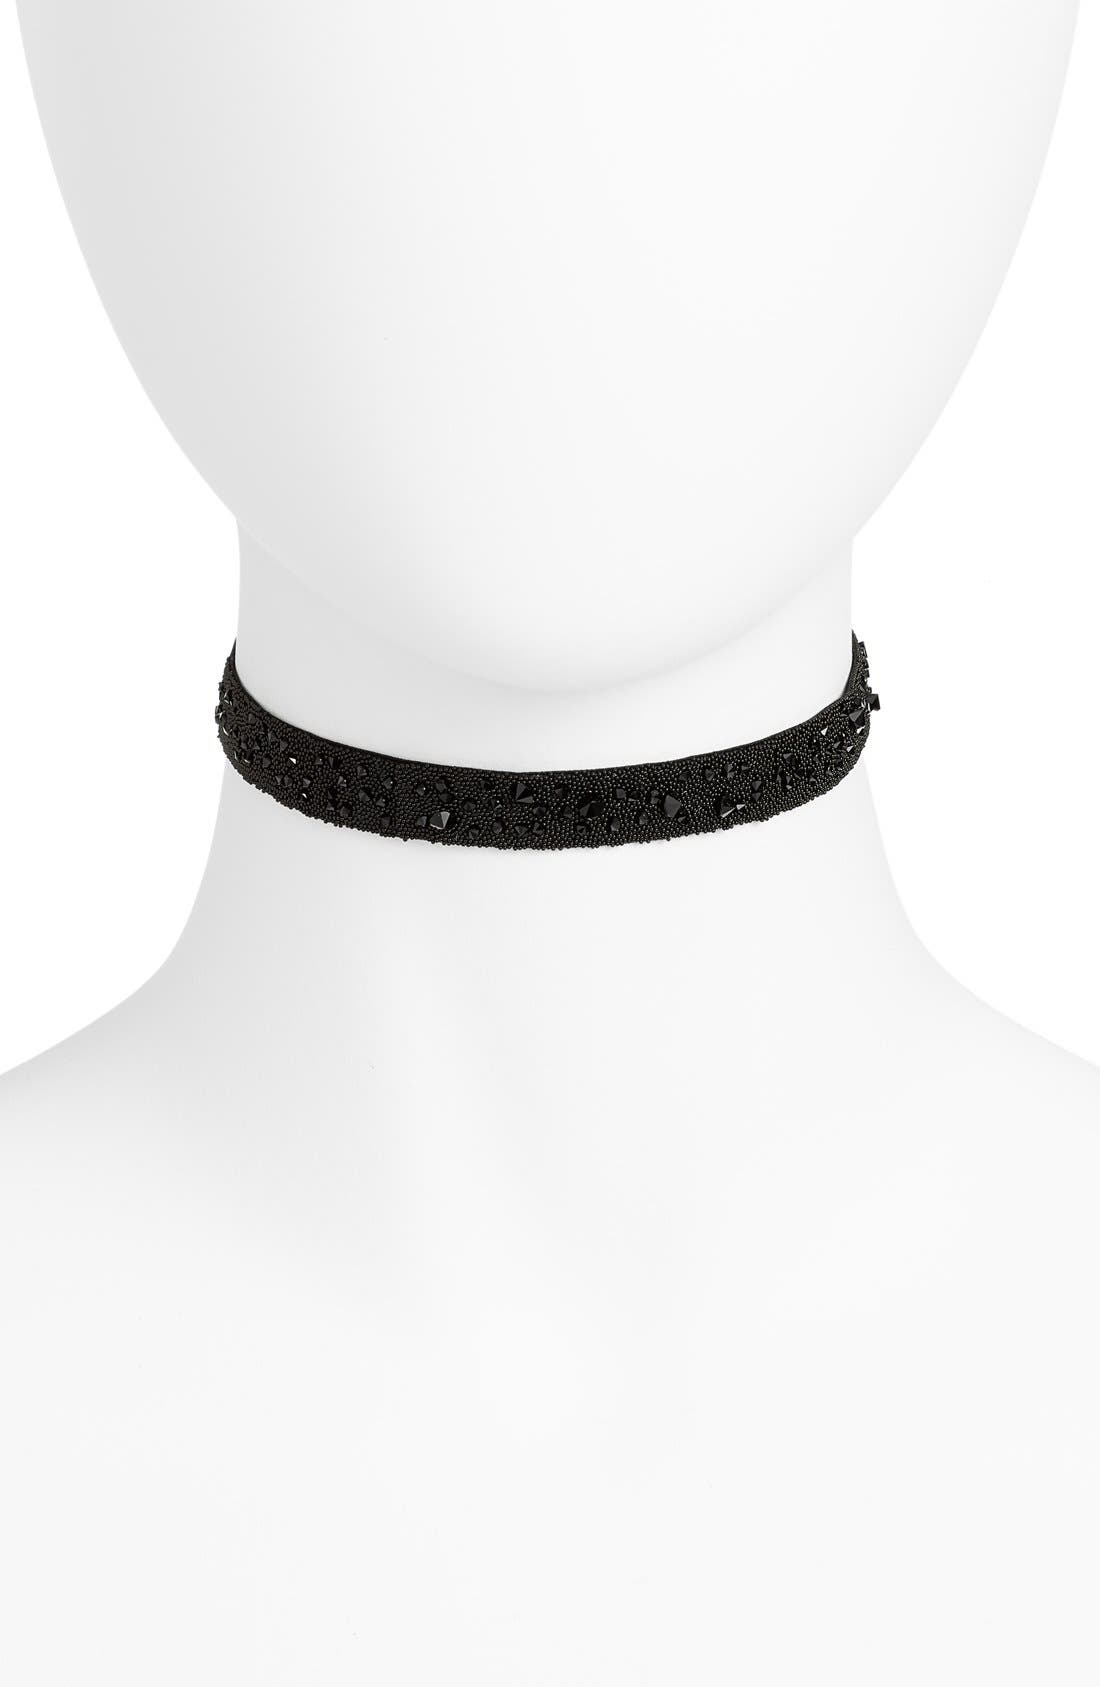 Alternate Image 1 Selected - Les interchangeables Medley Crystal Choker